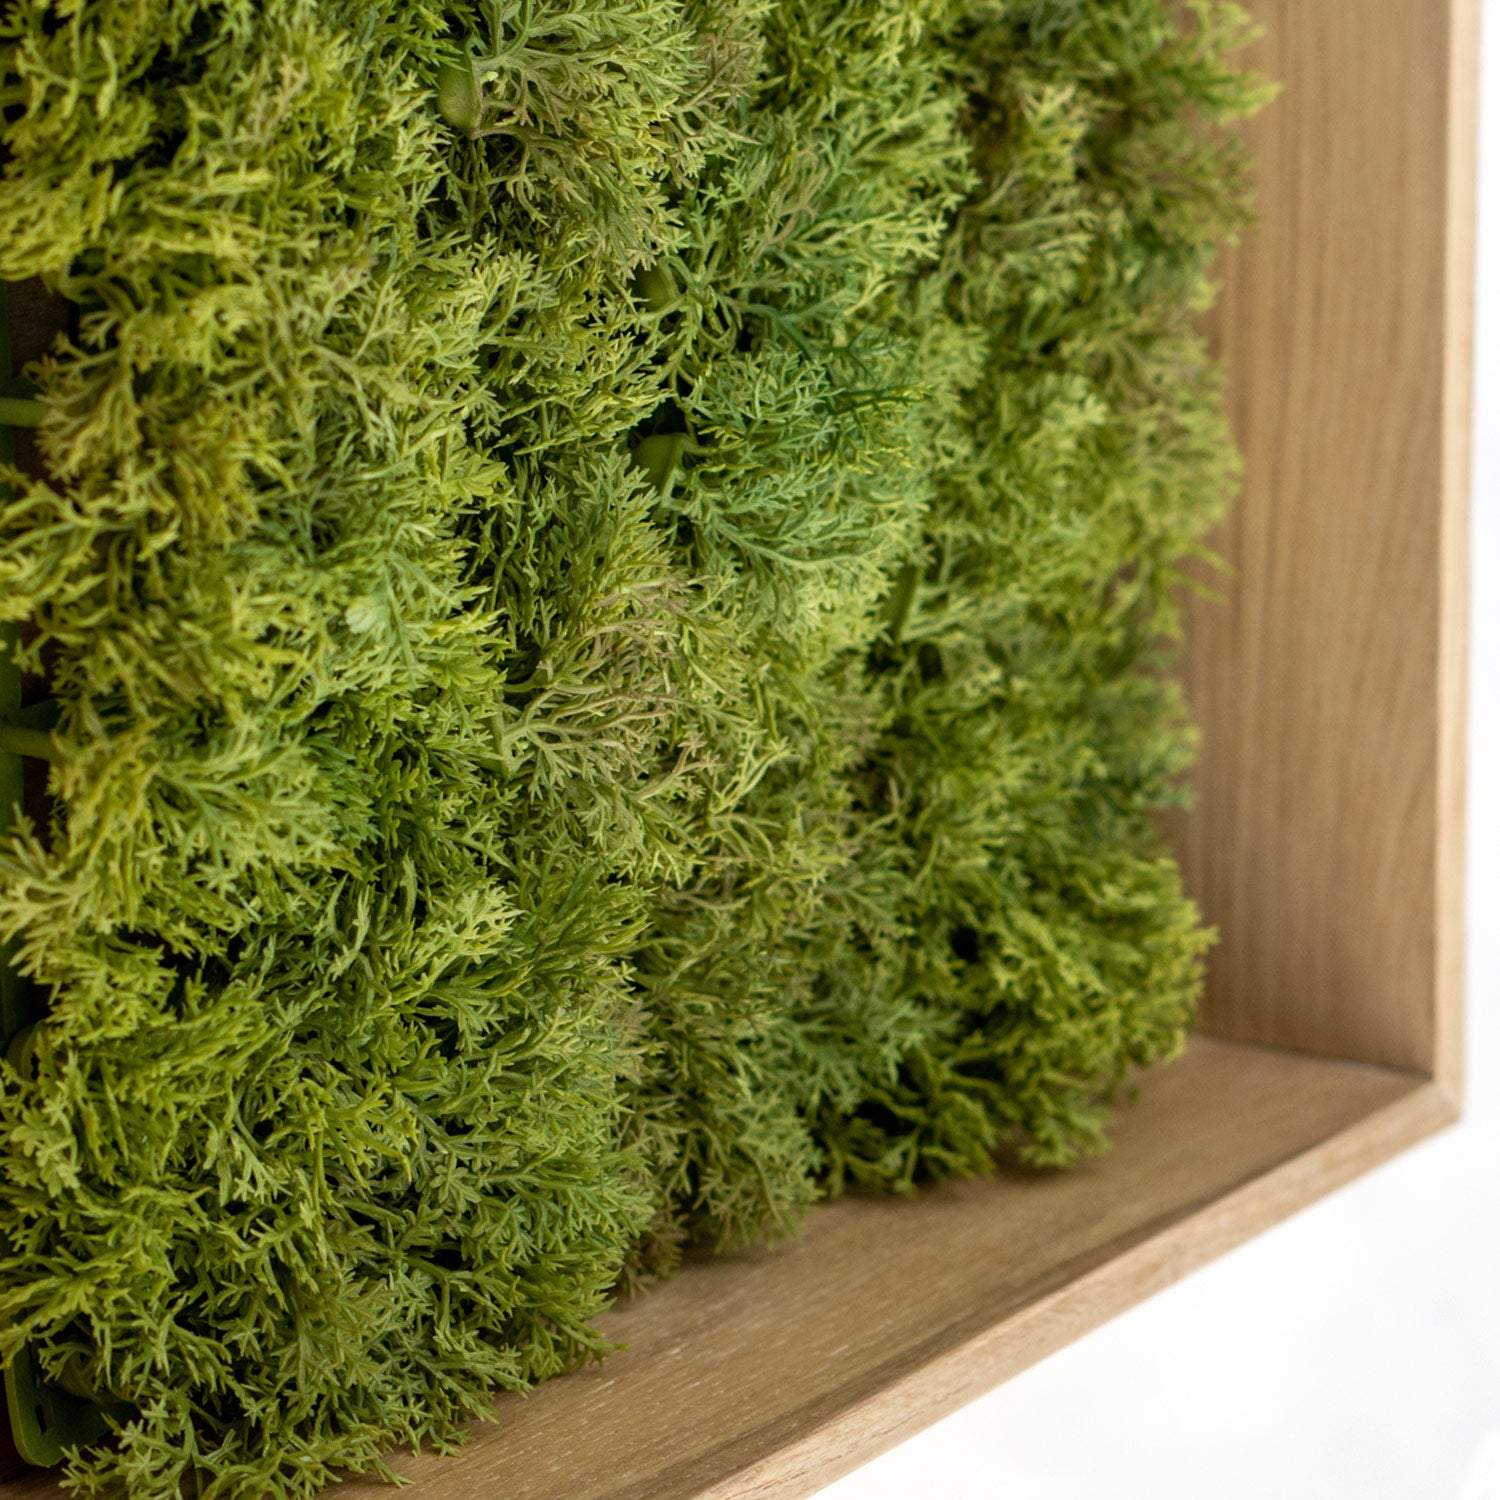 Green Wall: Permanent Botanical Textured Moss in a shadow box. (close up)